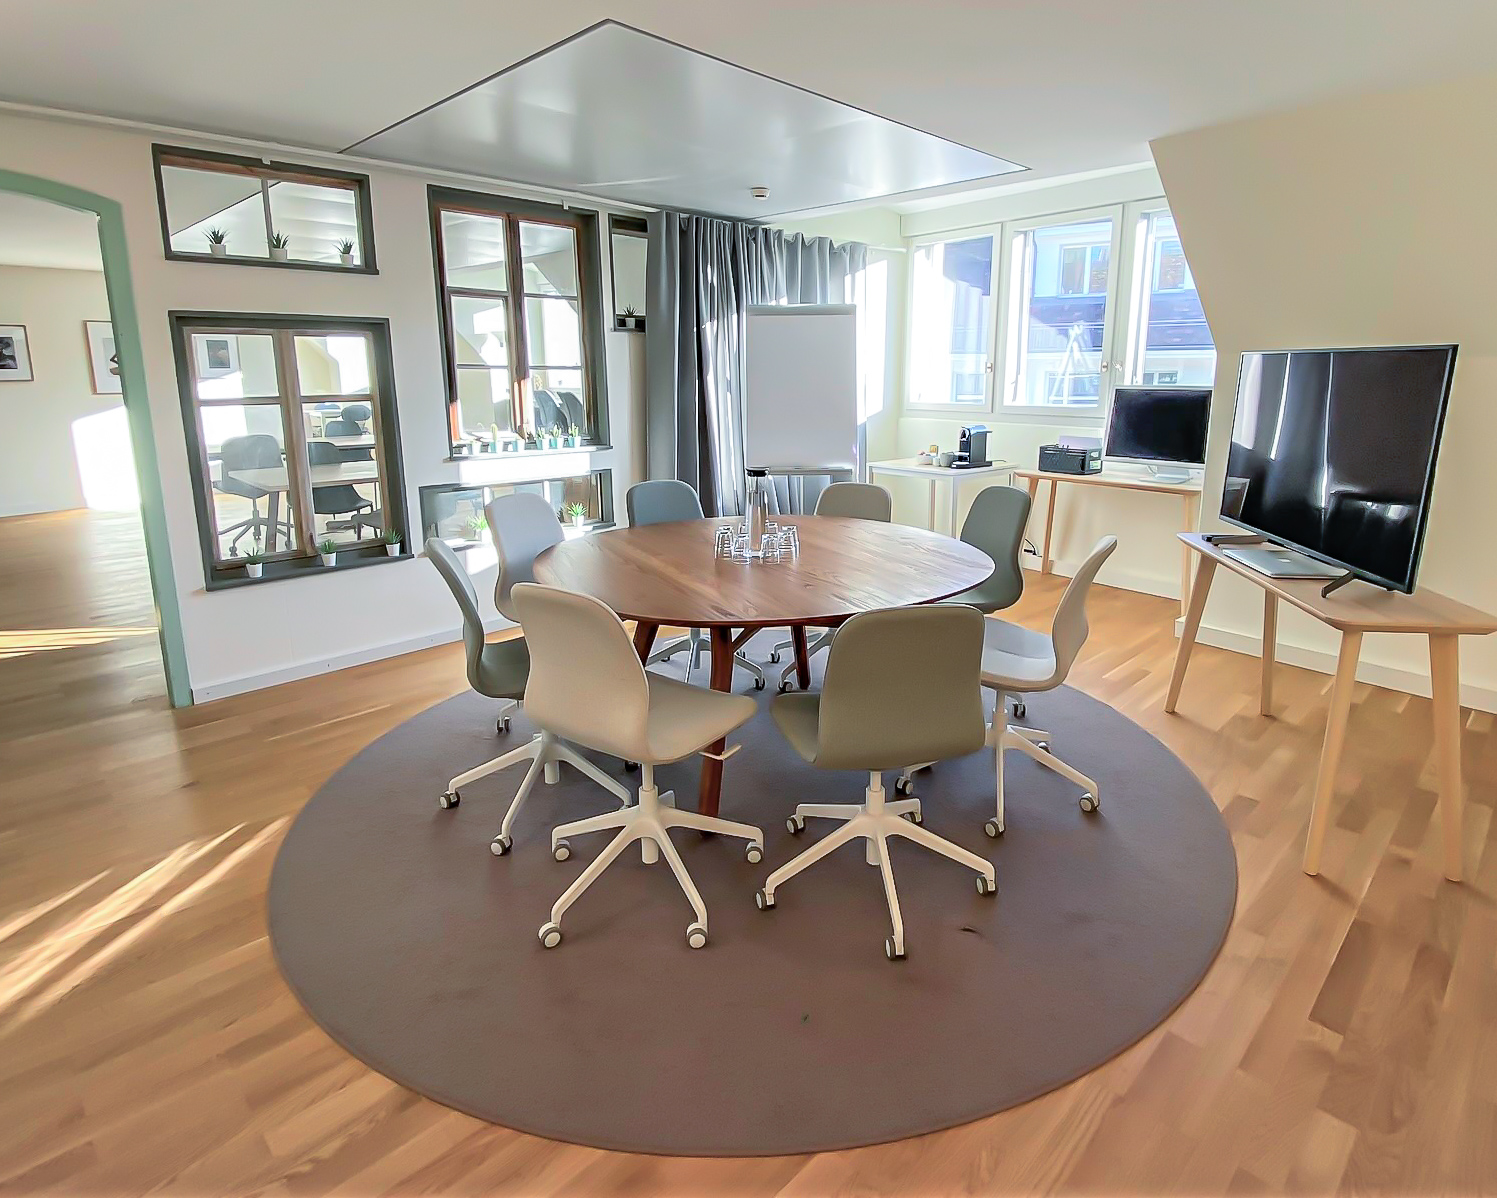 Meeting room with round table and big screen